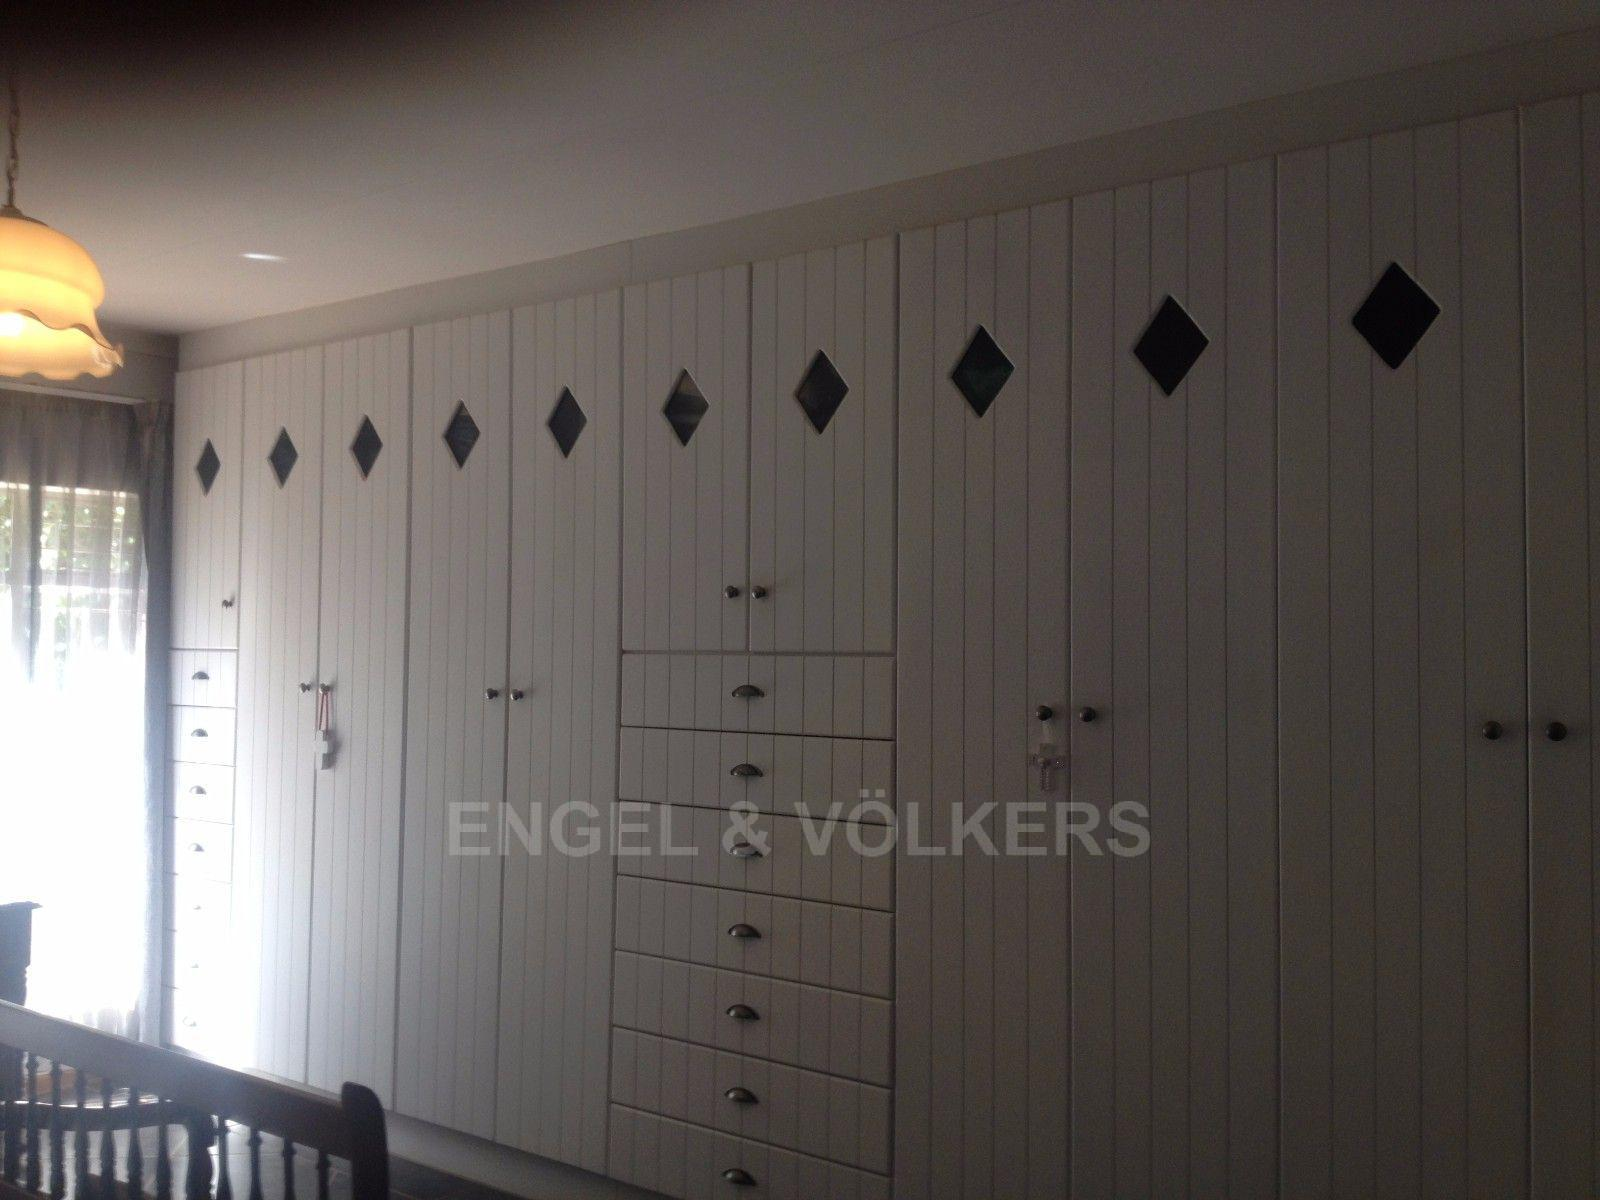 Heilige Akker property for sale. Ref No: 13612418. Picture no 18